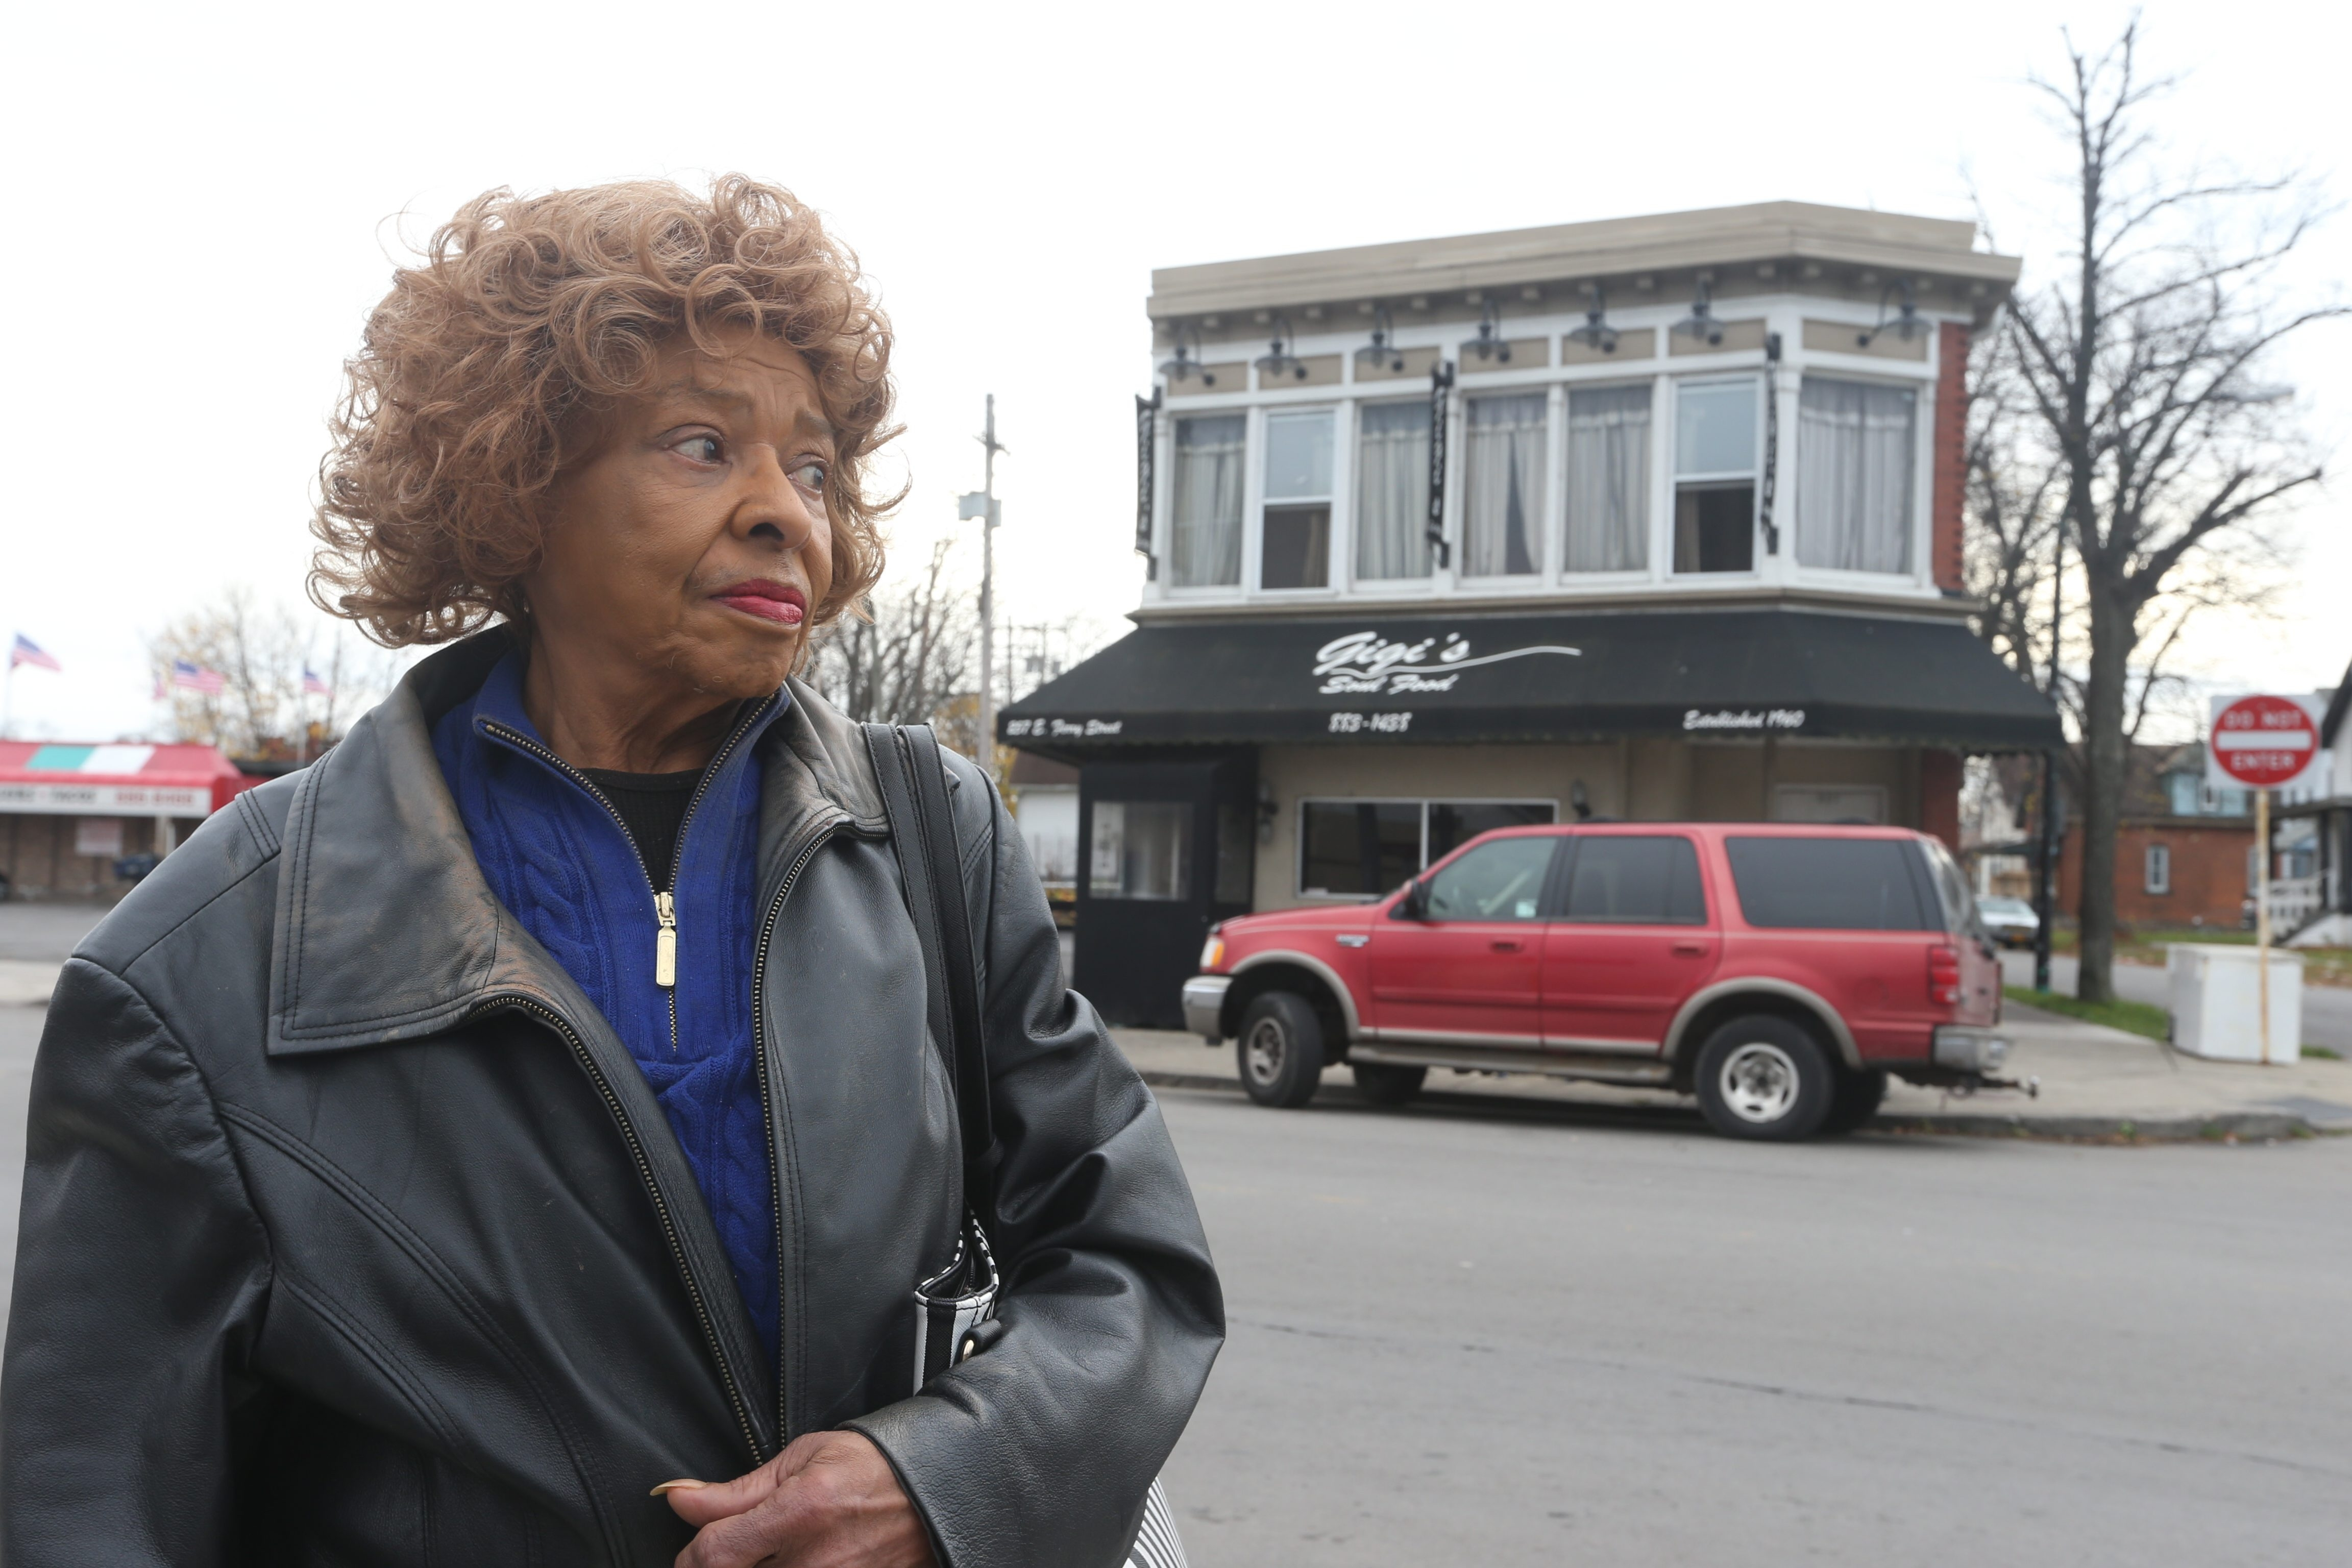 Blondine Harvin, who founded Gigi's Restaurant in 1960, says she is committed to reopening the East Side community icon after a fire Saturday caused about $150,000 in damage.